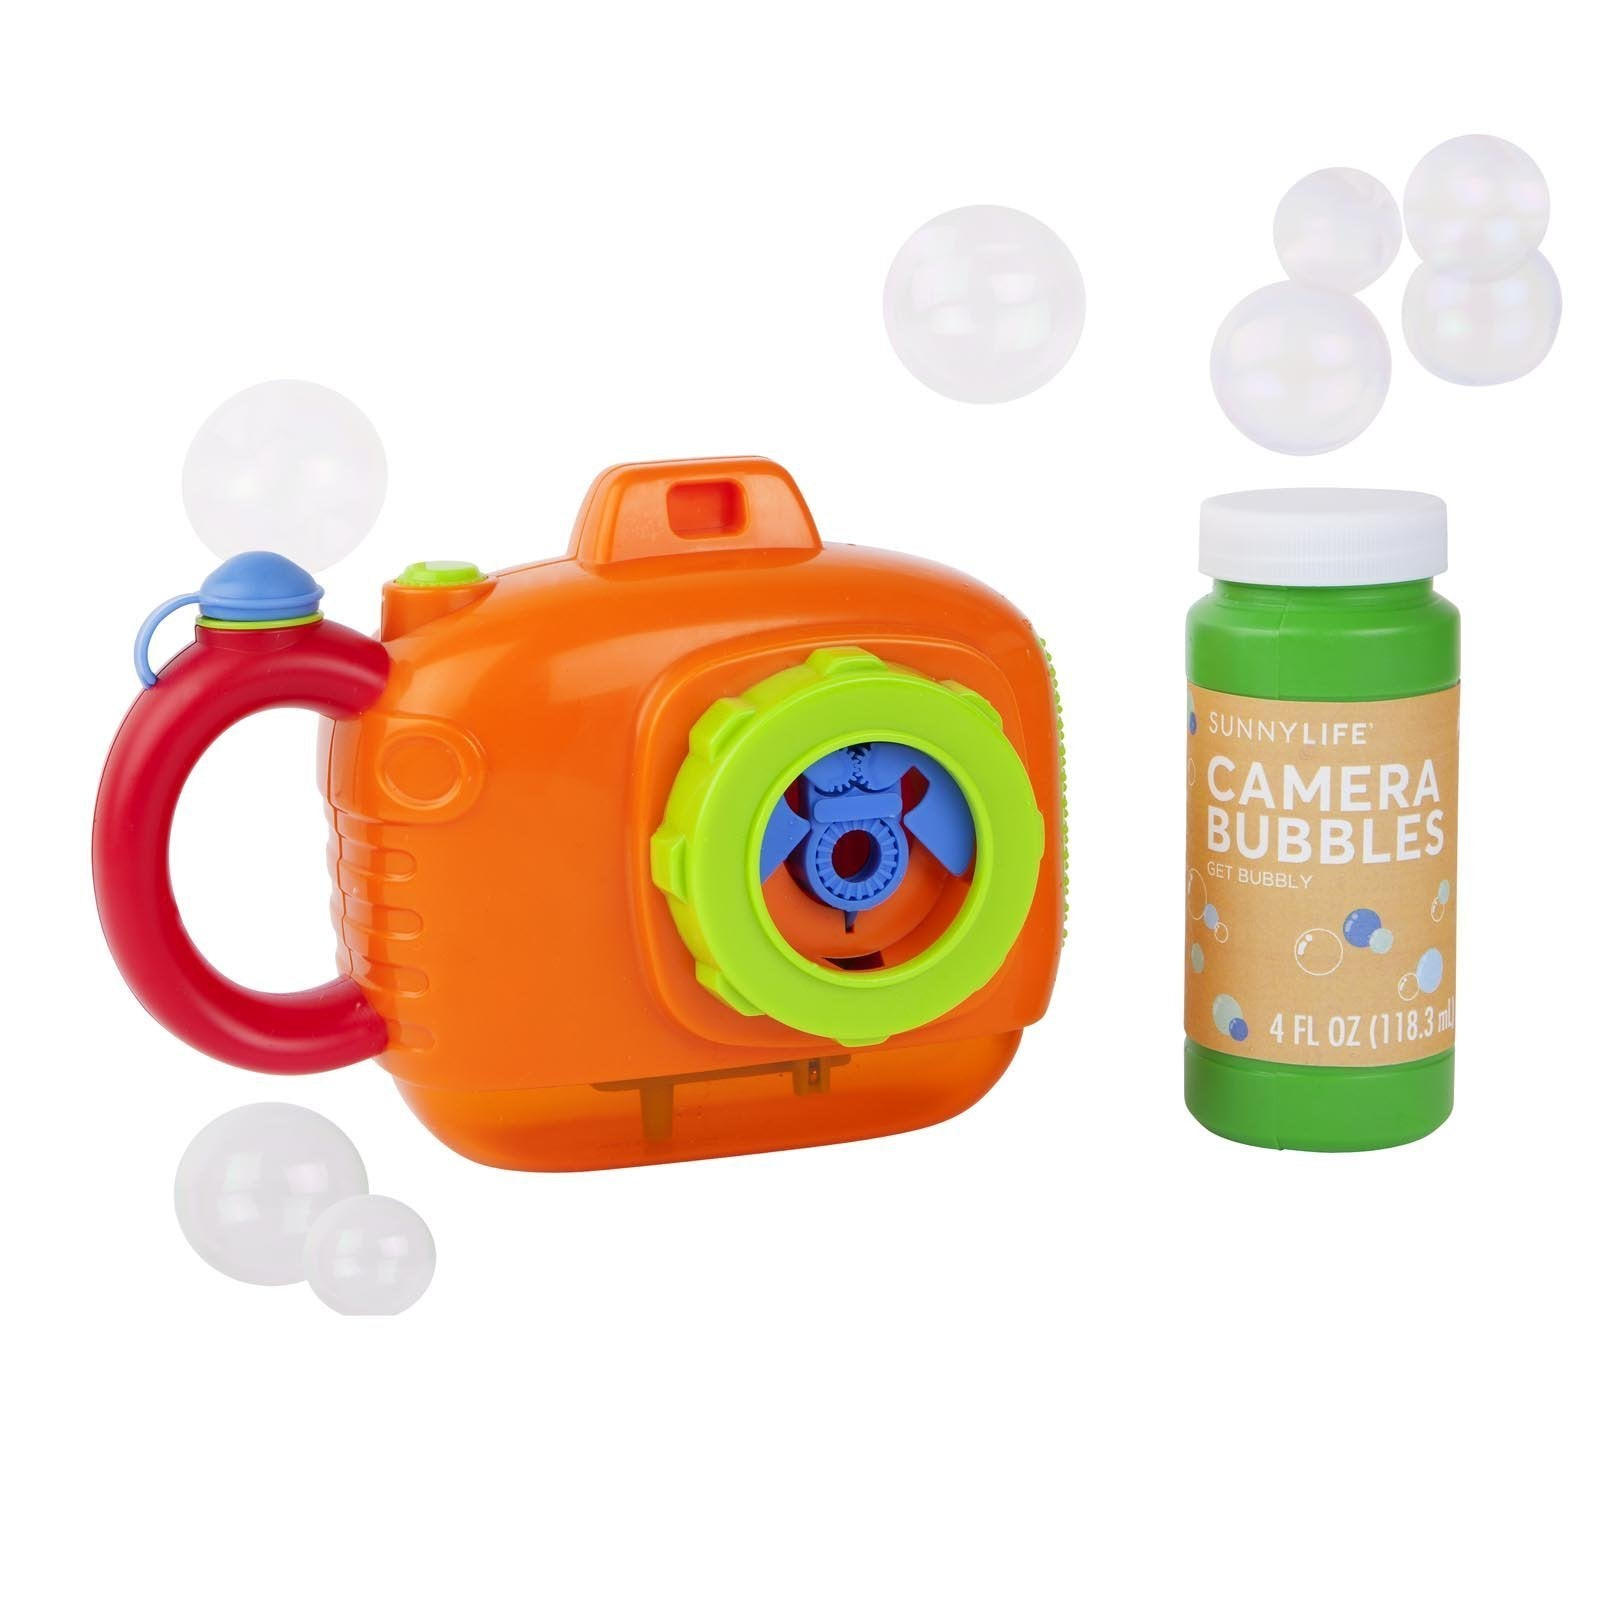 Camera Bubbles Orange